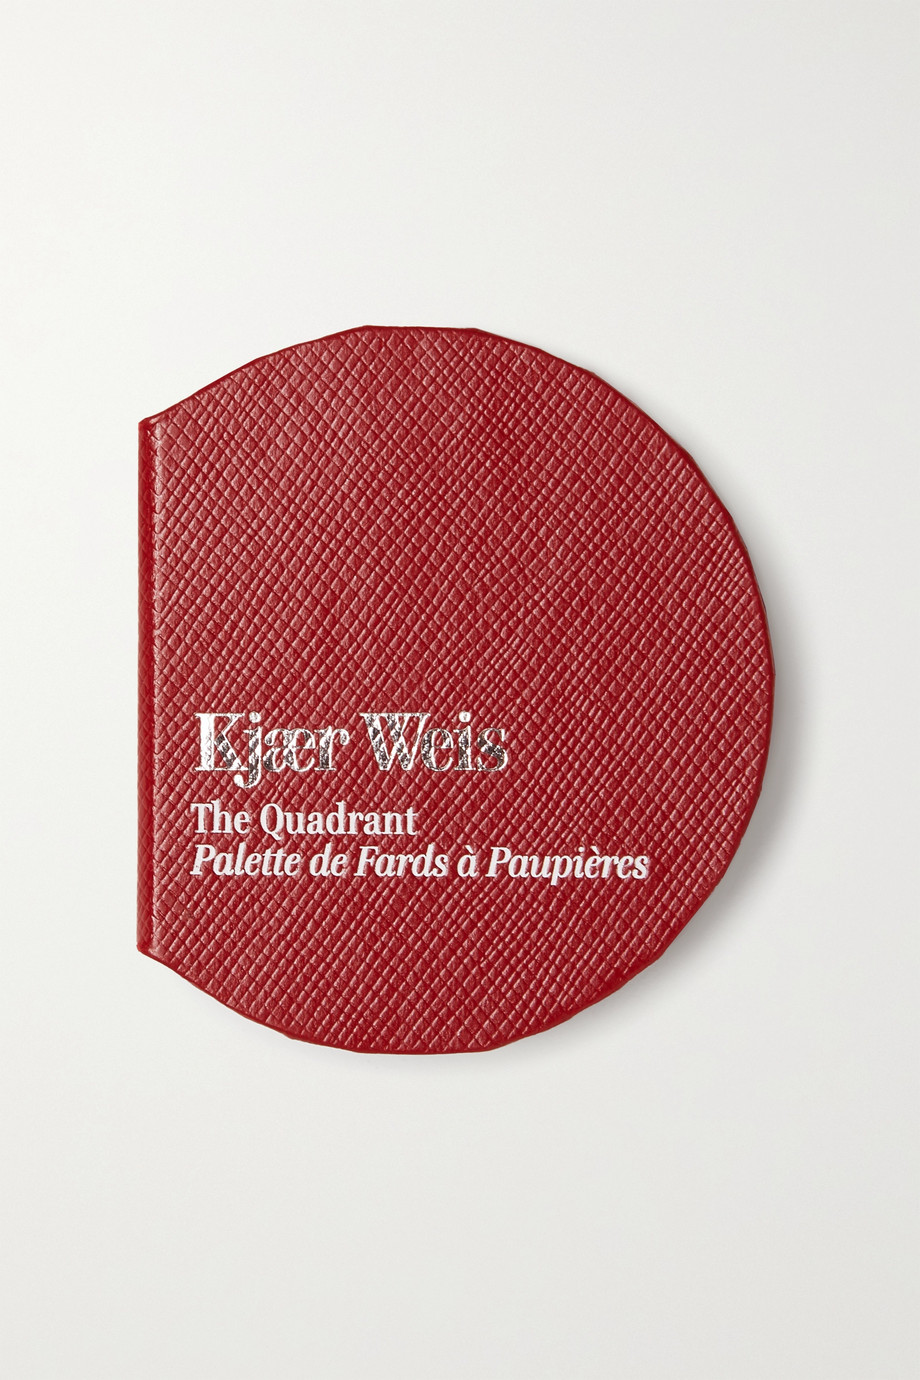 Kjaer Weis Red Edition Refillable Compact - The Quadrant